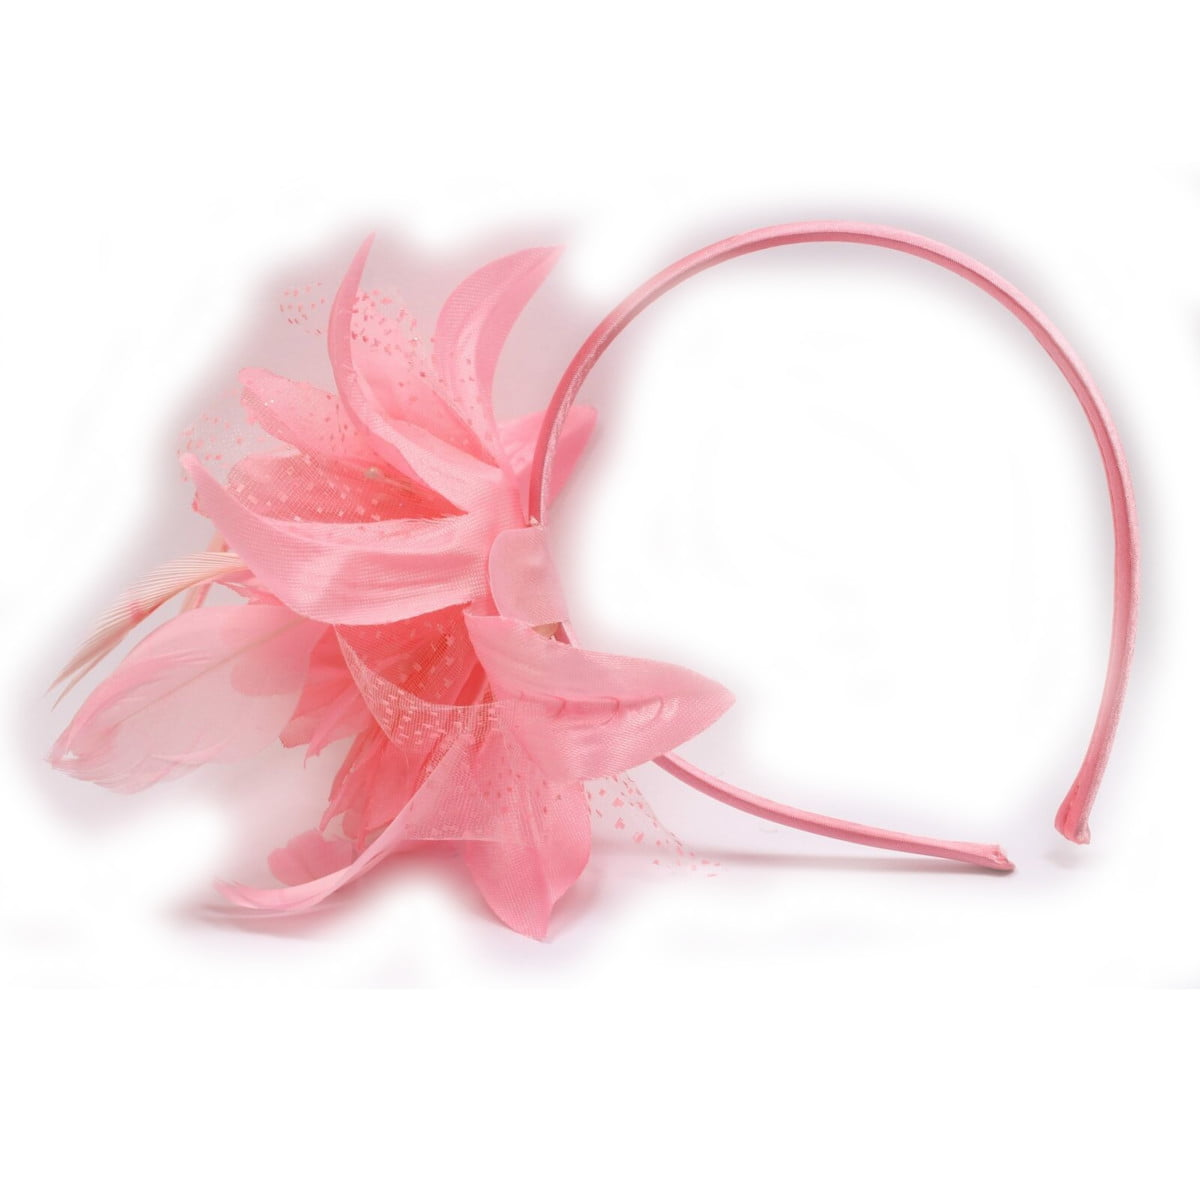 Pink fascinator set on alice band with chiffon flower and feather tendrils